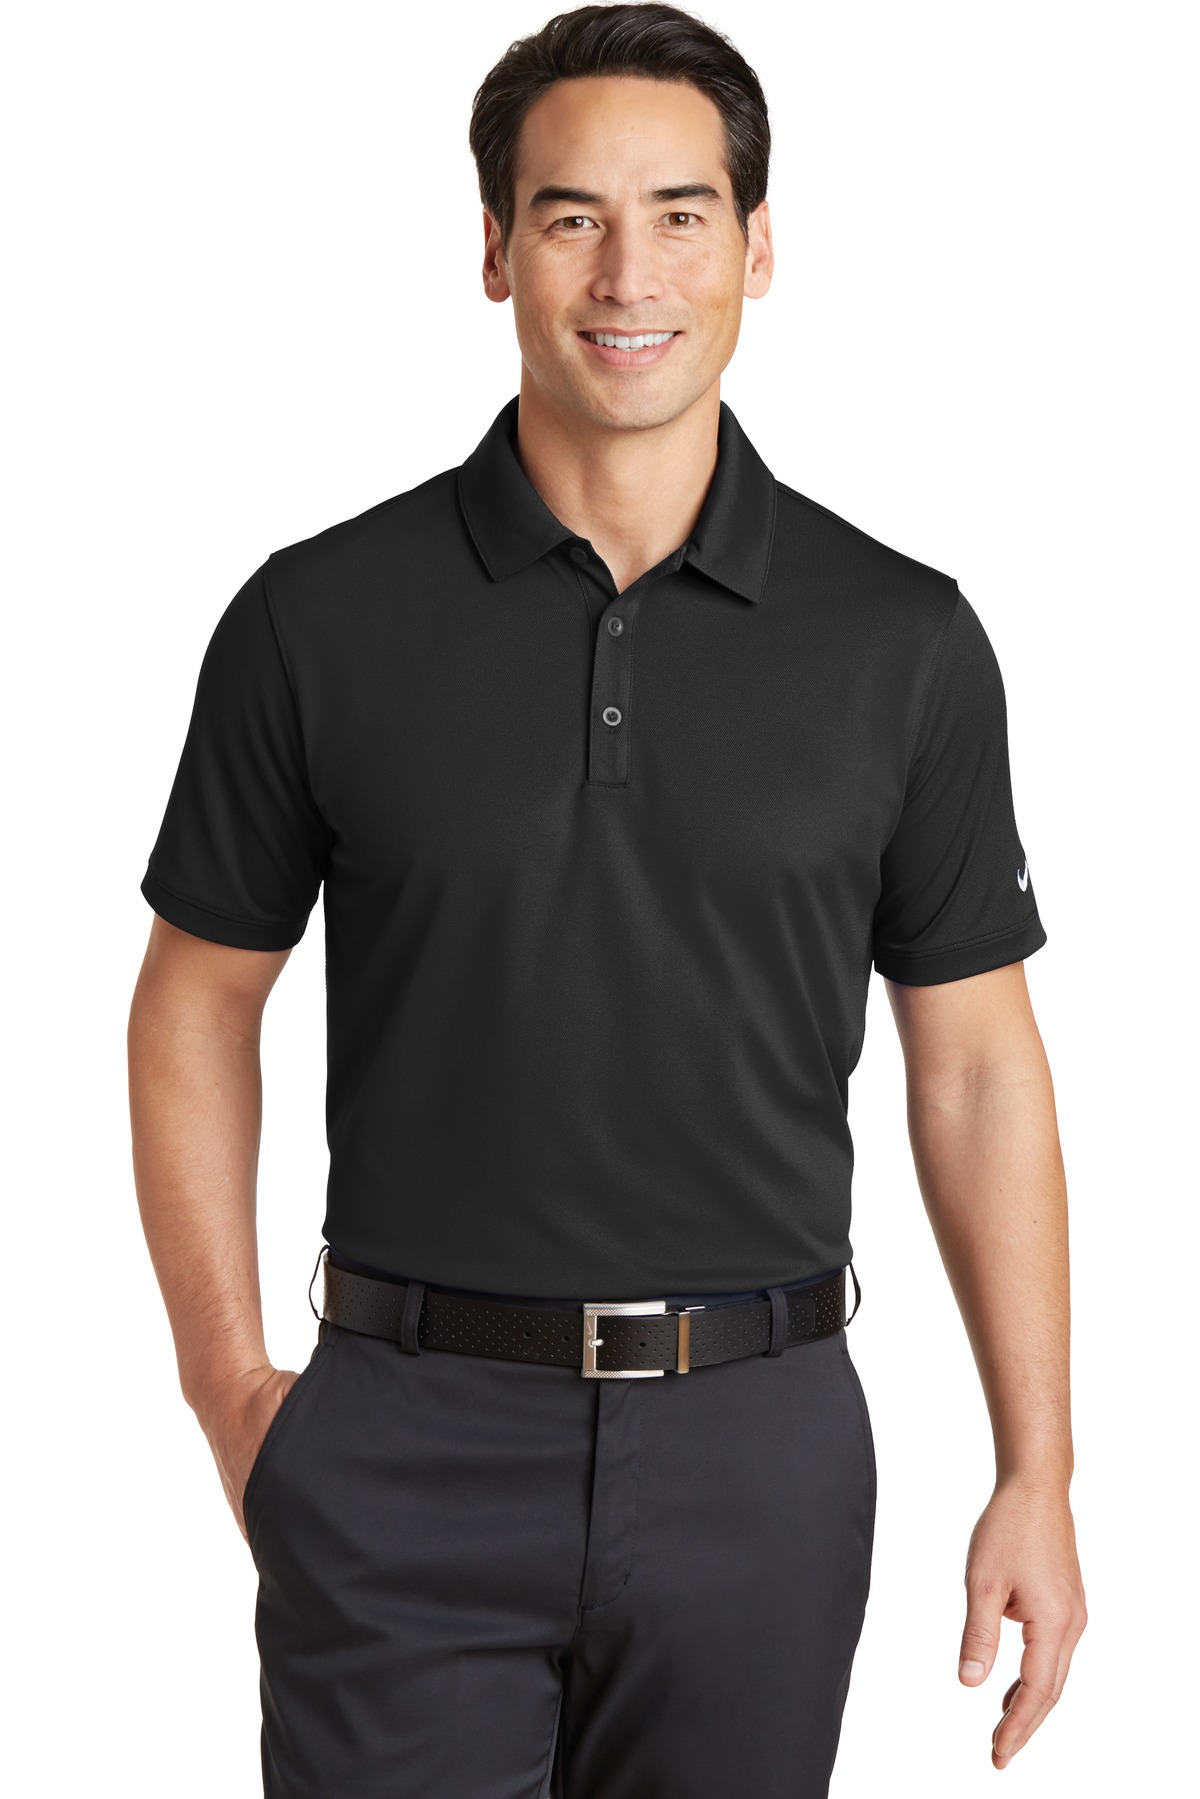 Nike golf 746099 dri fit solid icon pique polo men 39 s t for Dri fit collar shirts